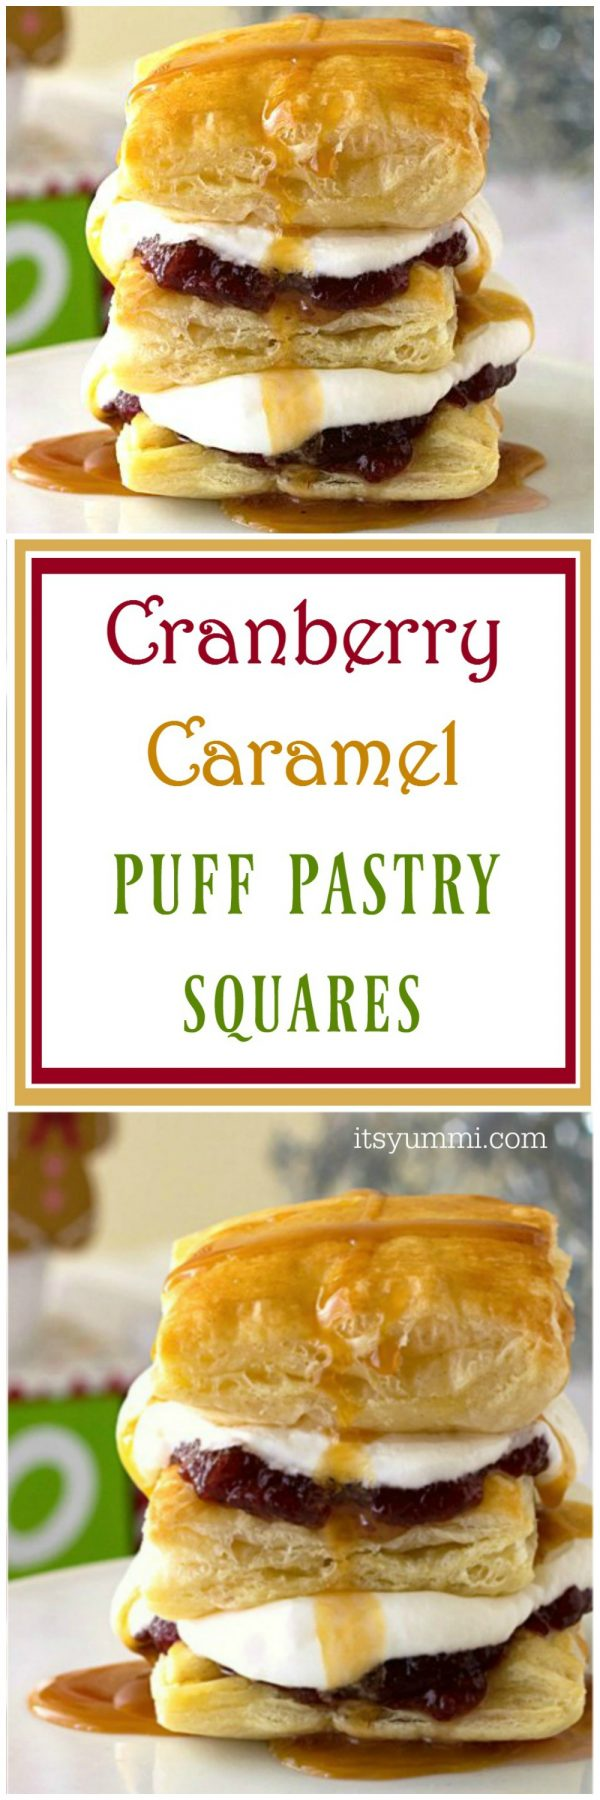 Cranberry Caramel Puff Pastry Dessert Squares - This is my new easy Thanksgiving dessert recipe. It uses frozen puff pastry sheets, organic cranberry sauce, whipped cream, and caramel sauce, so it's super easy to make! Recipe on itsyummi.com